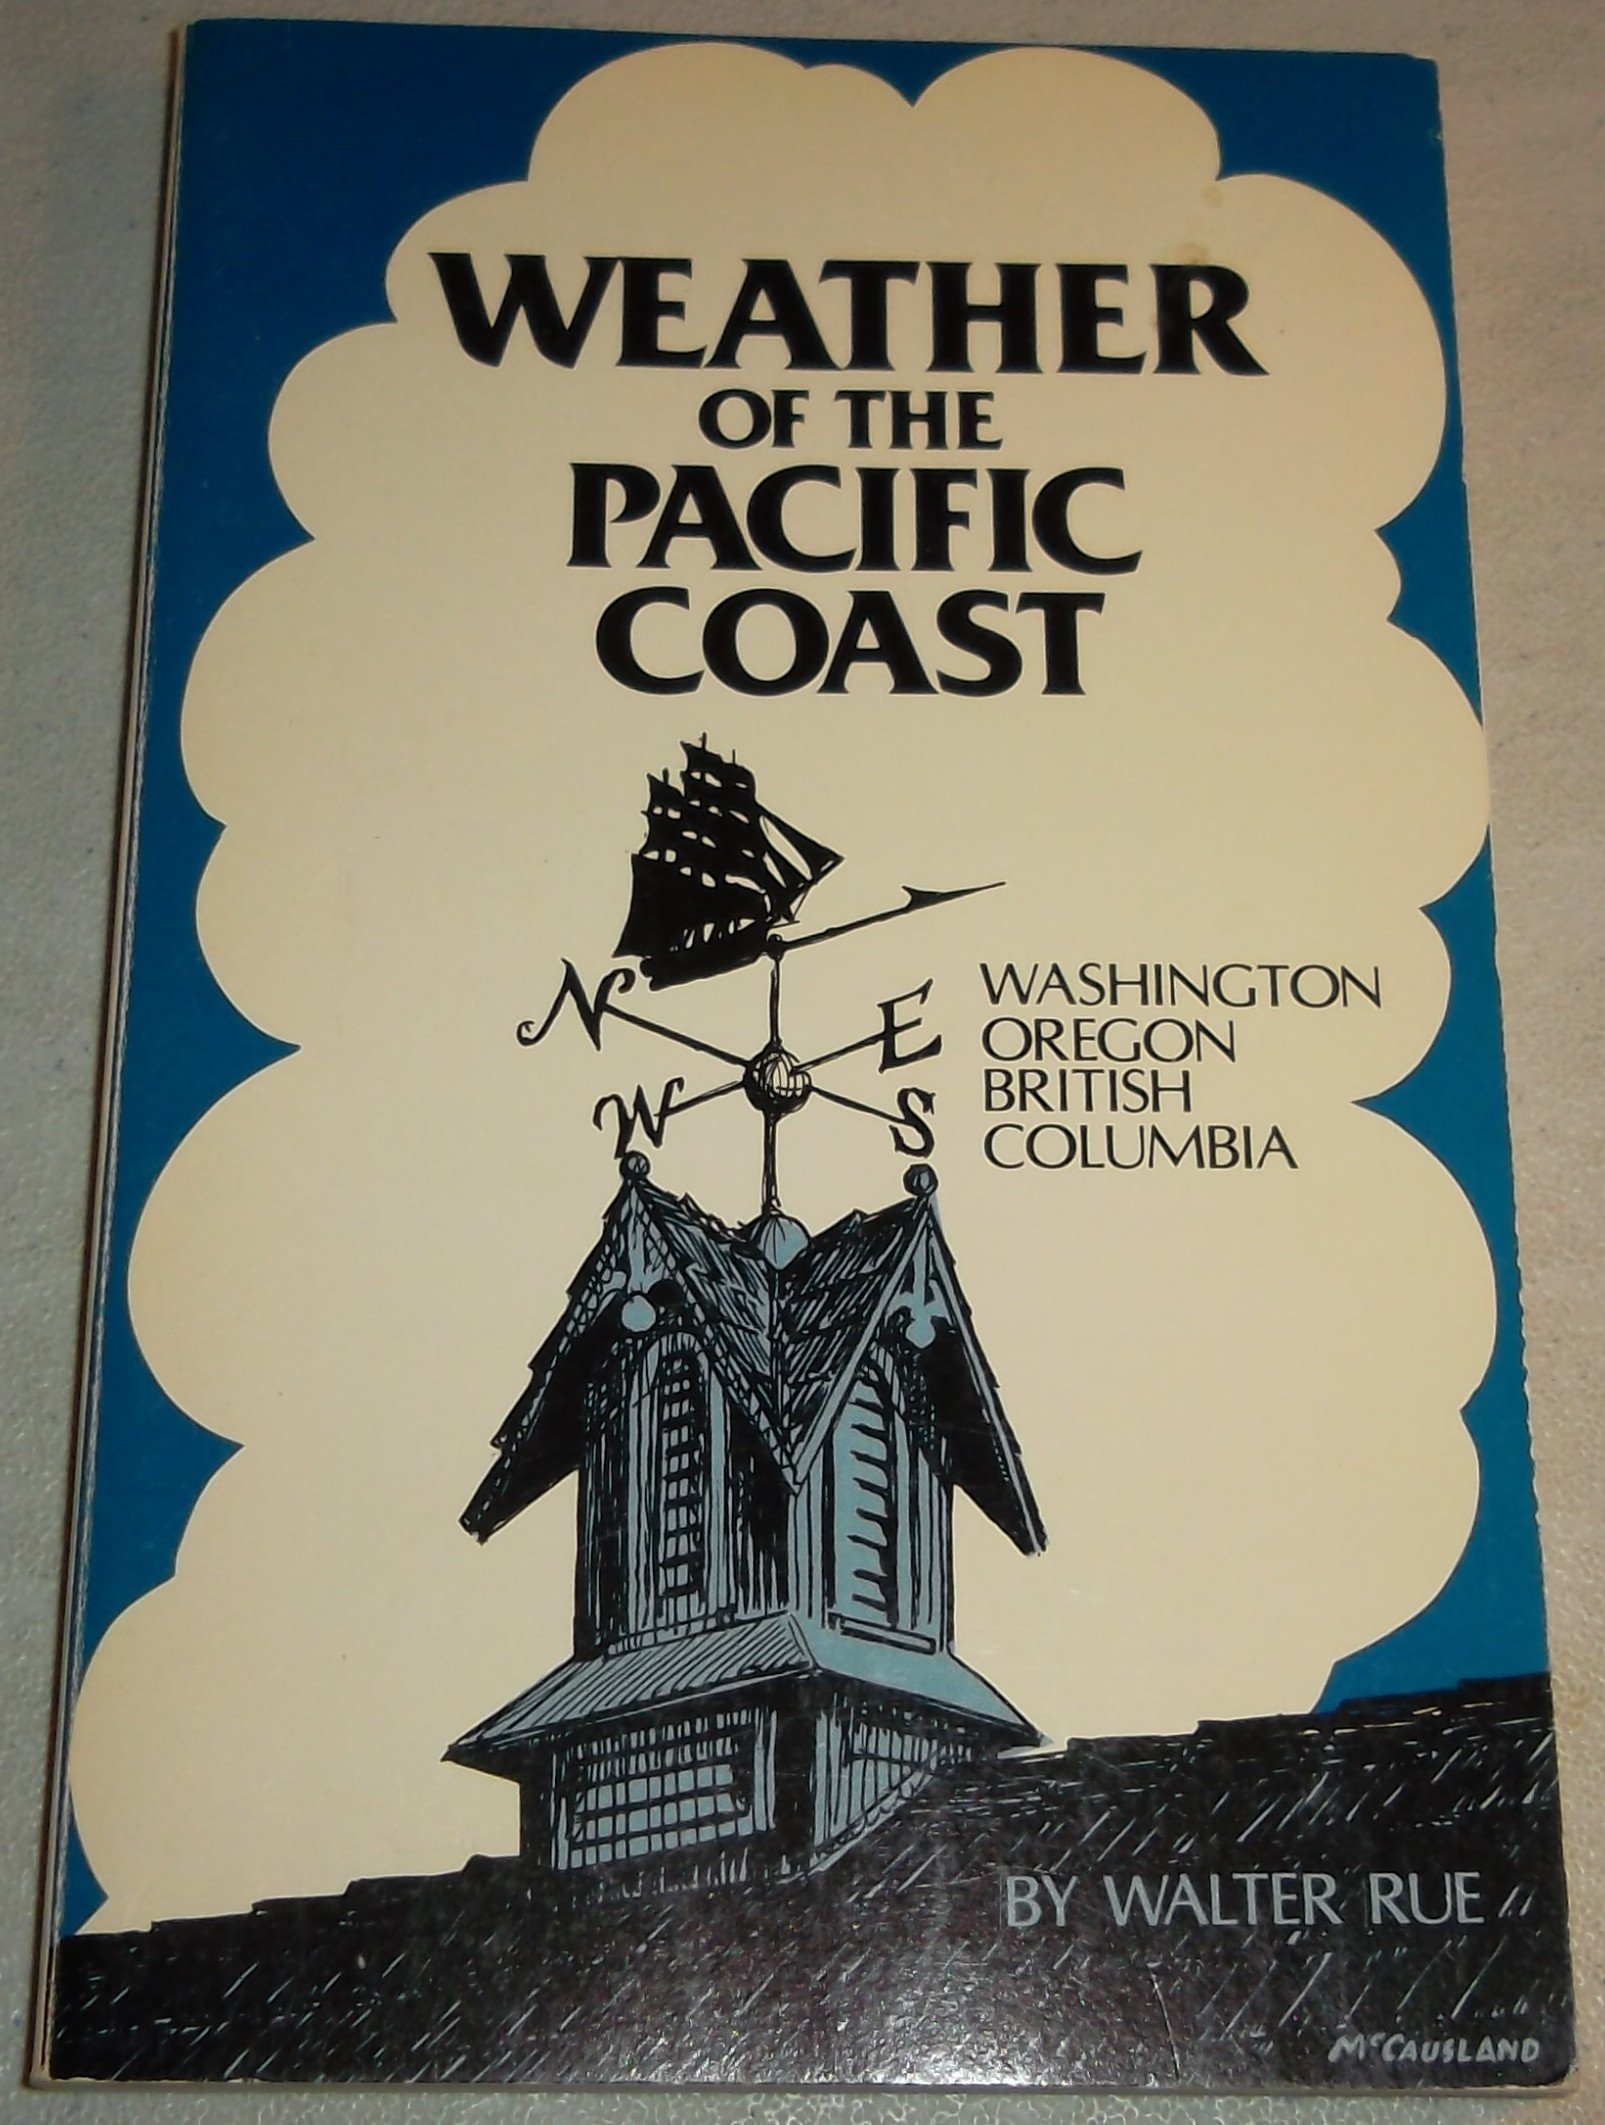 Weather of the Pacific coast: Washington, Oregon, British Columbia, Rue, Walter